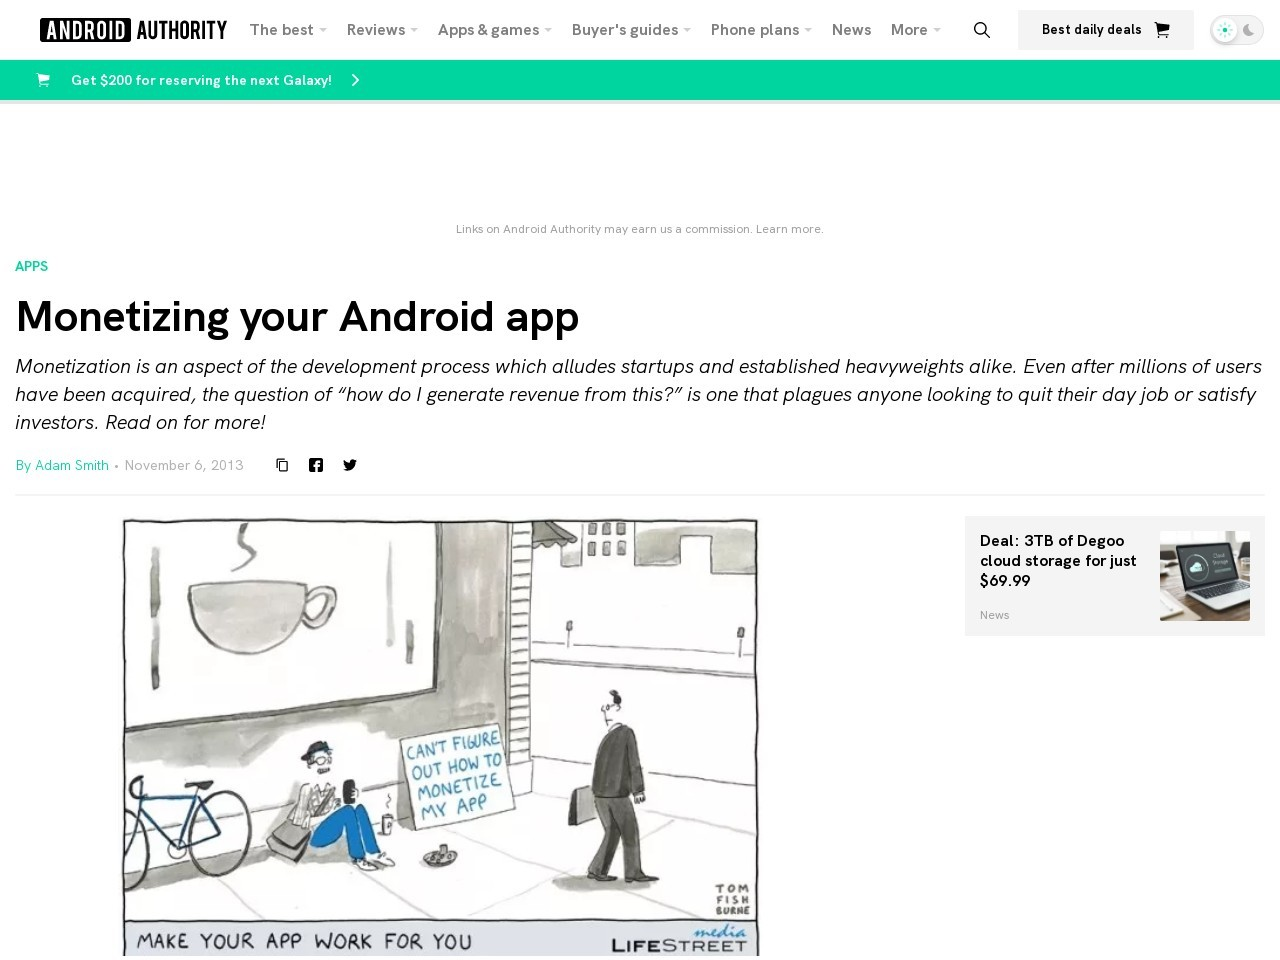 Monetizing your Android app